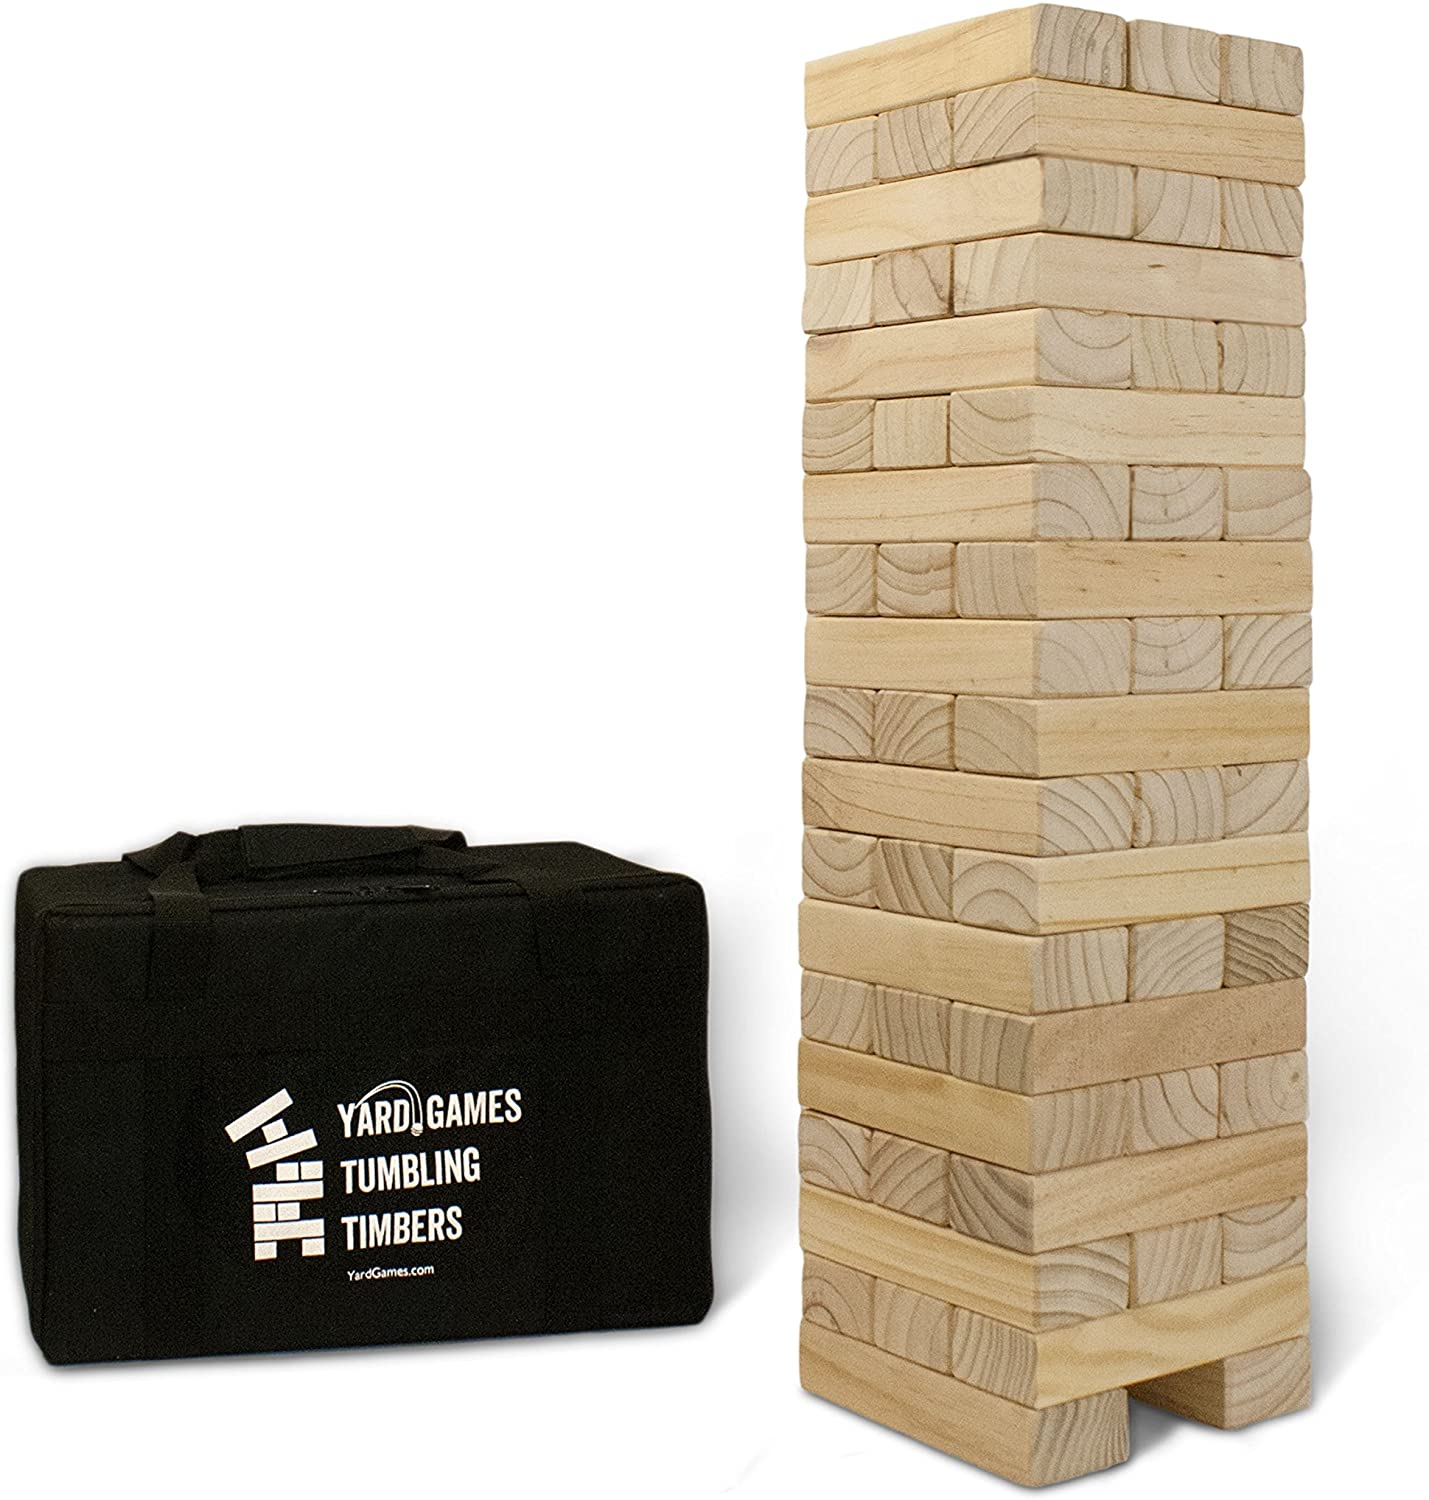 Amazon.com: Yard Games Giant Tumbling Timbers: Toys & Games